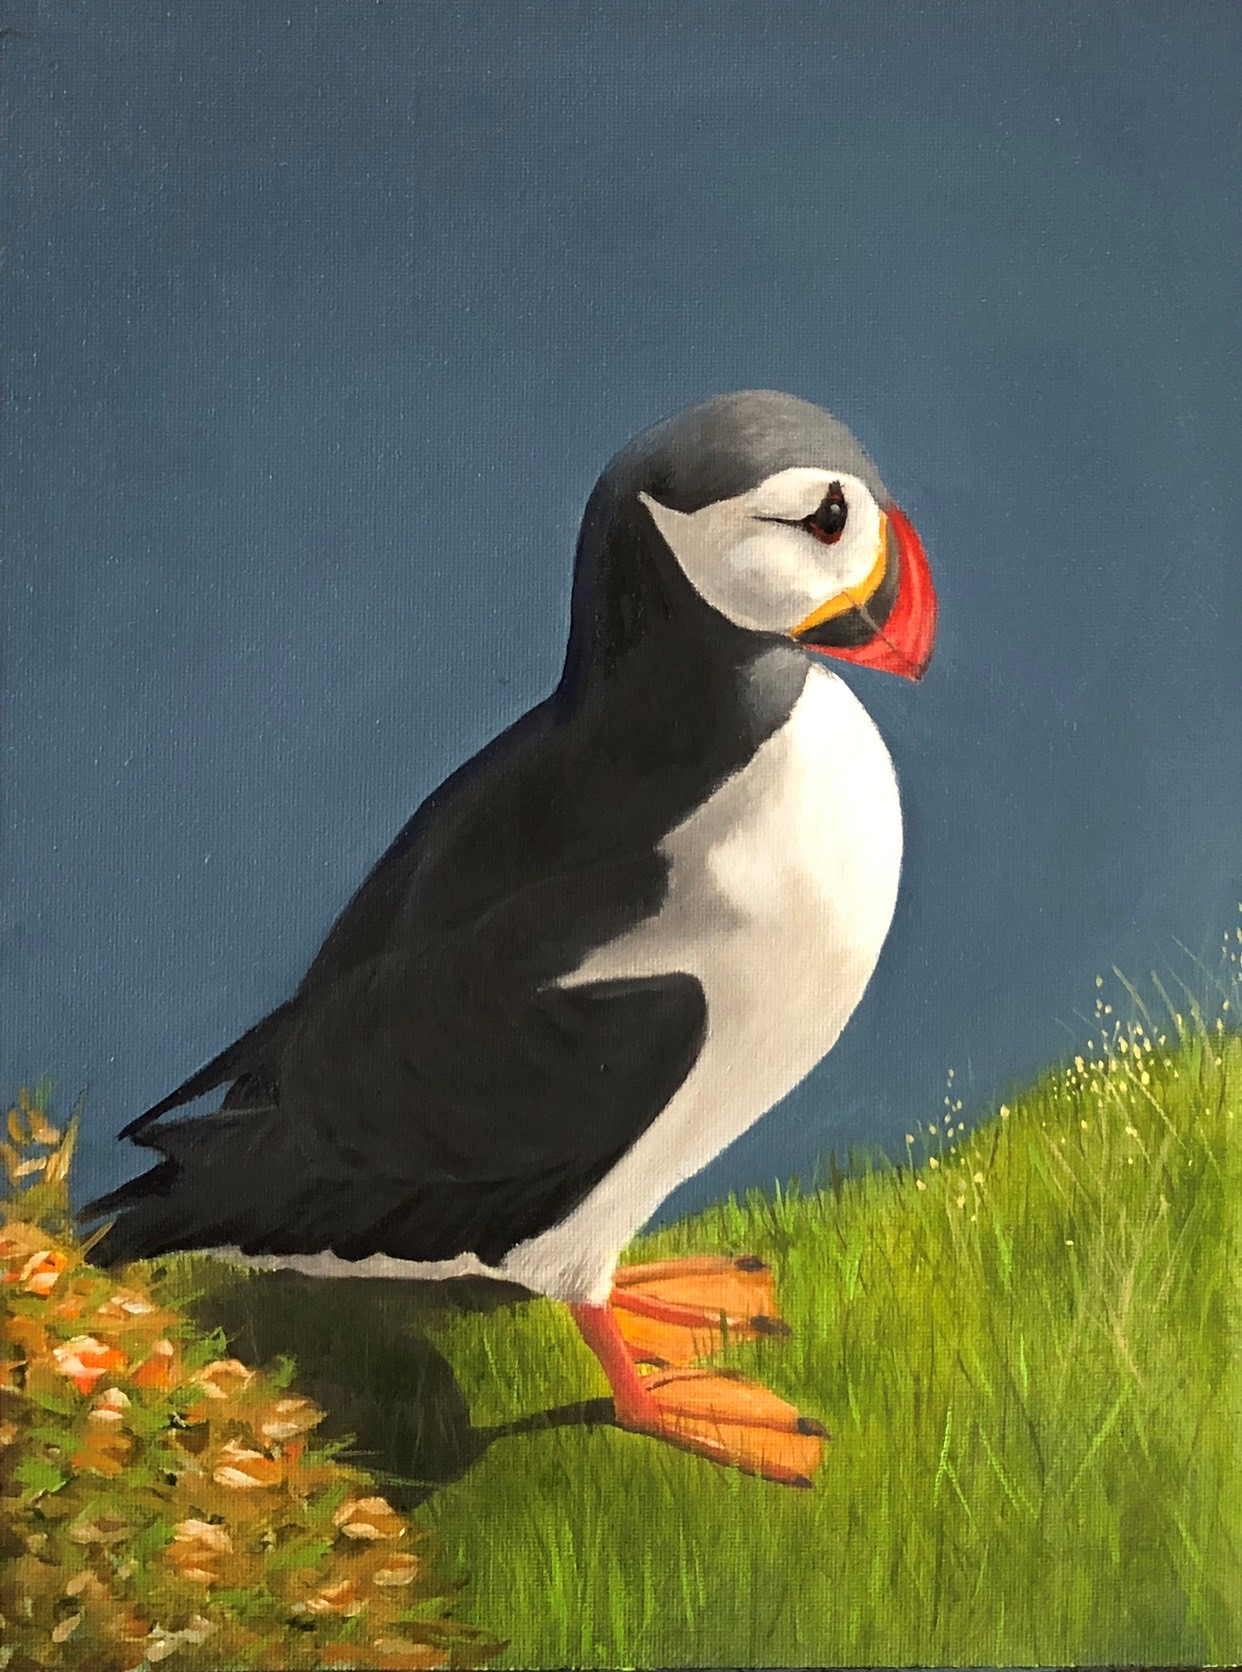 puffin on grass